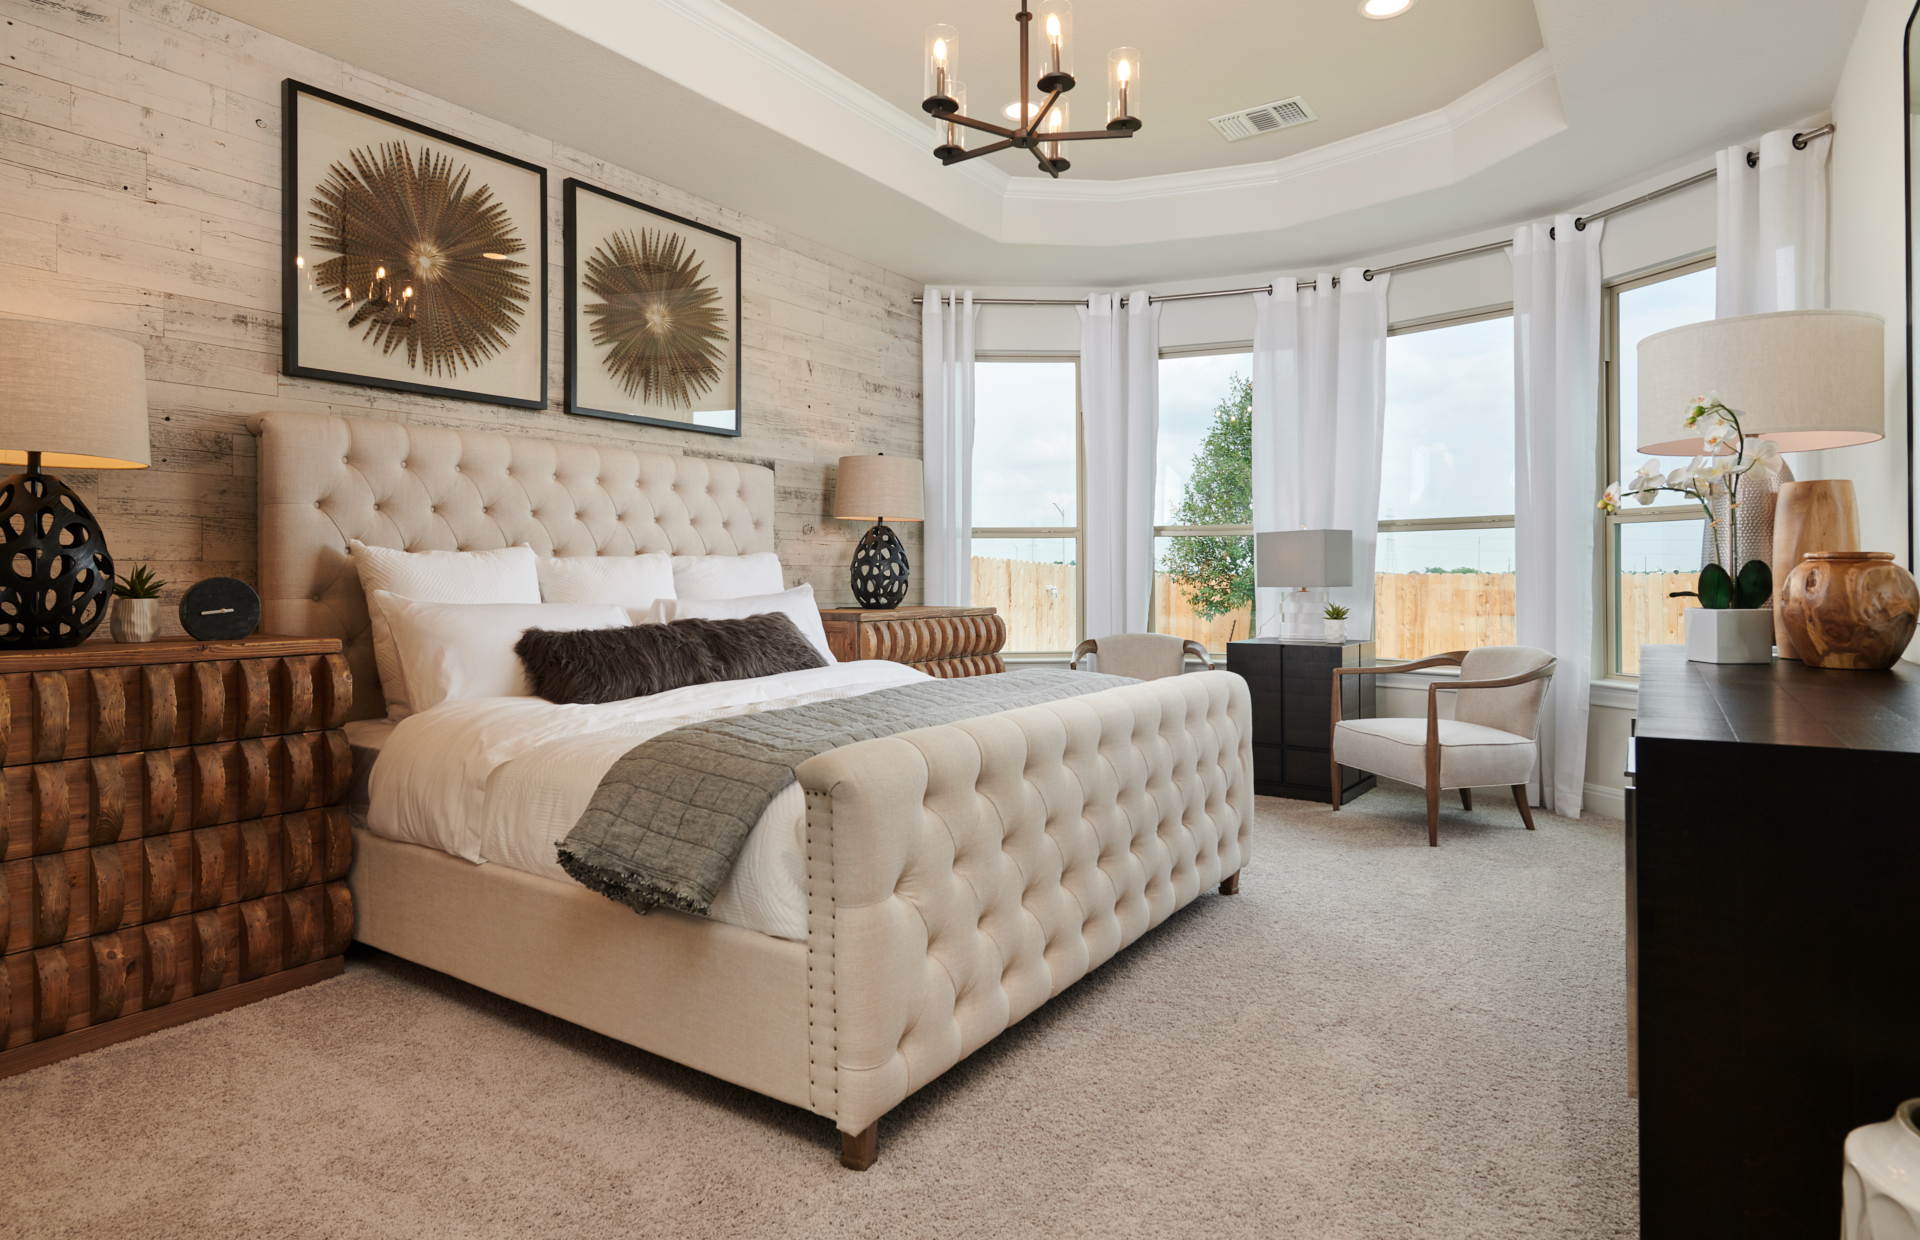 Carmel by Pulte Homes image 2